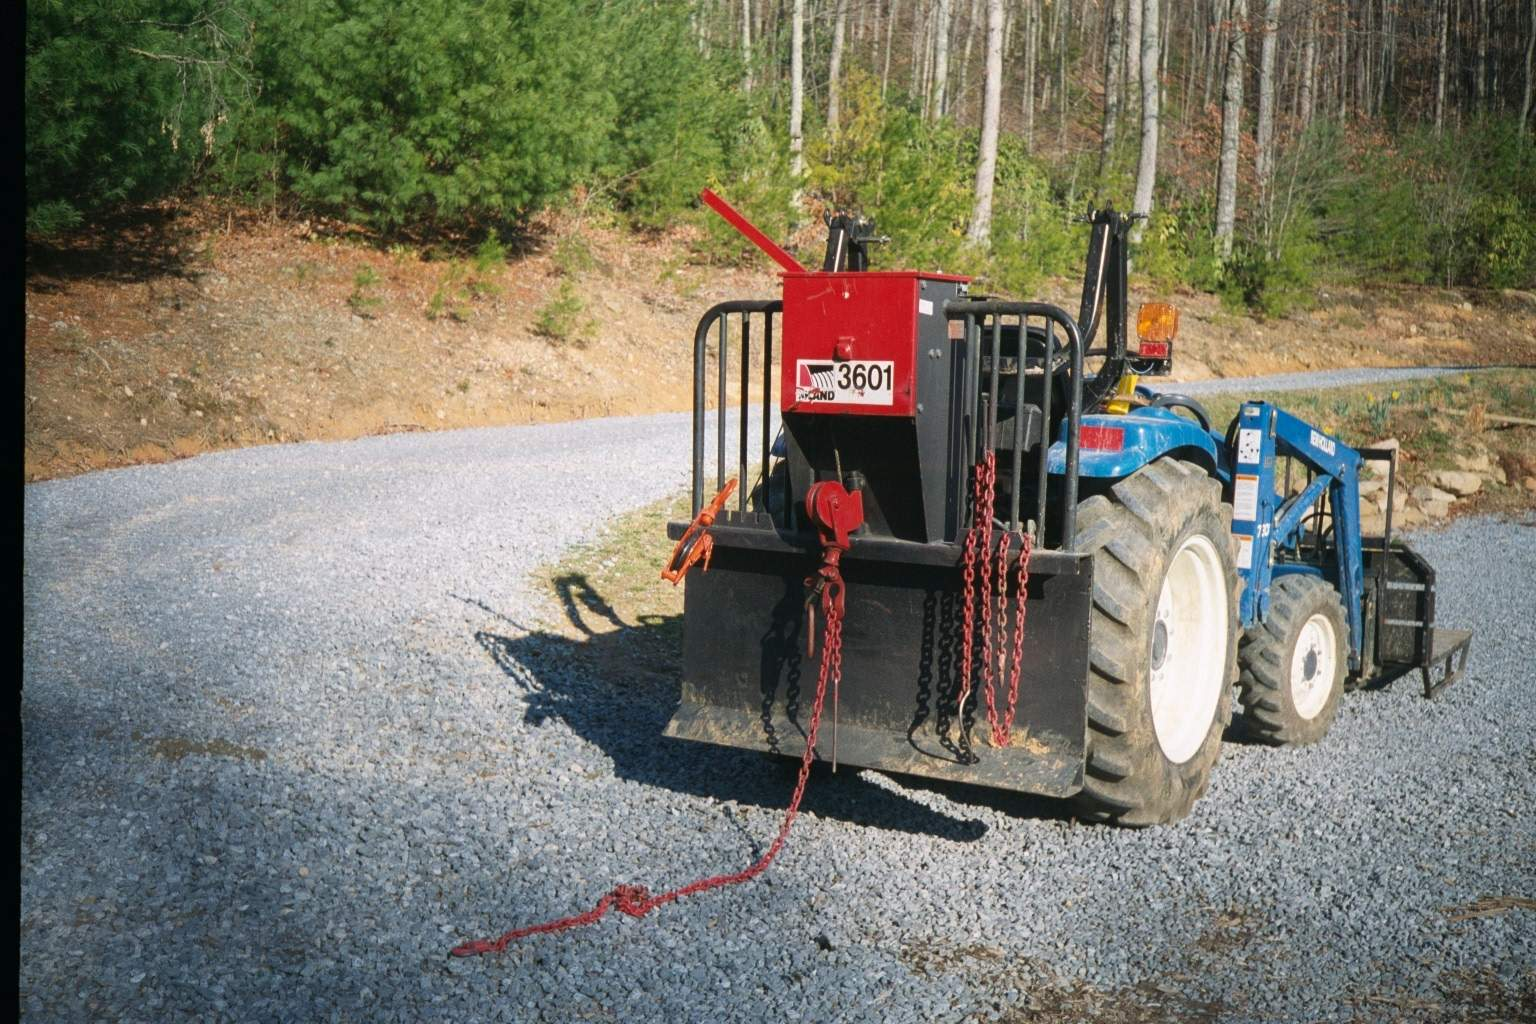 Tractor_Winch.